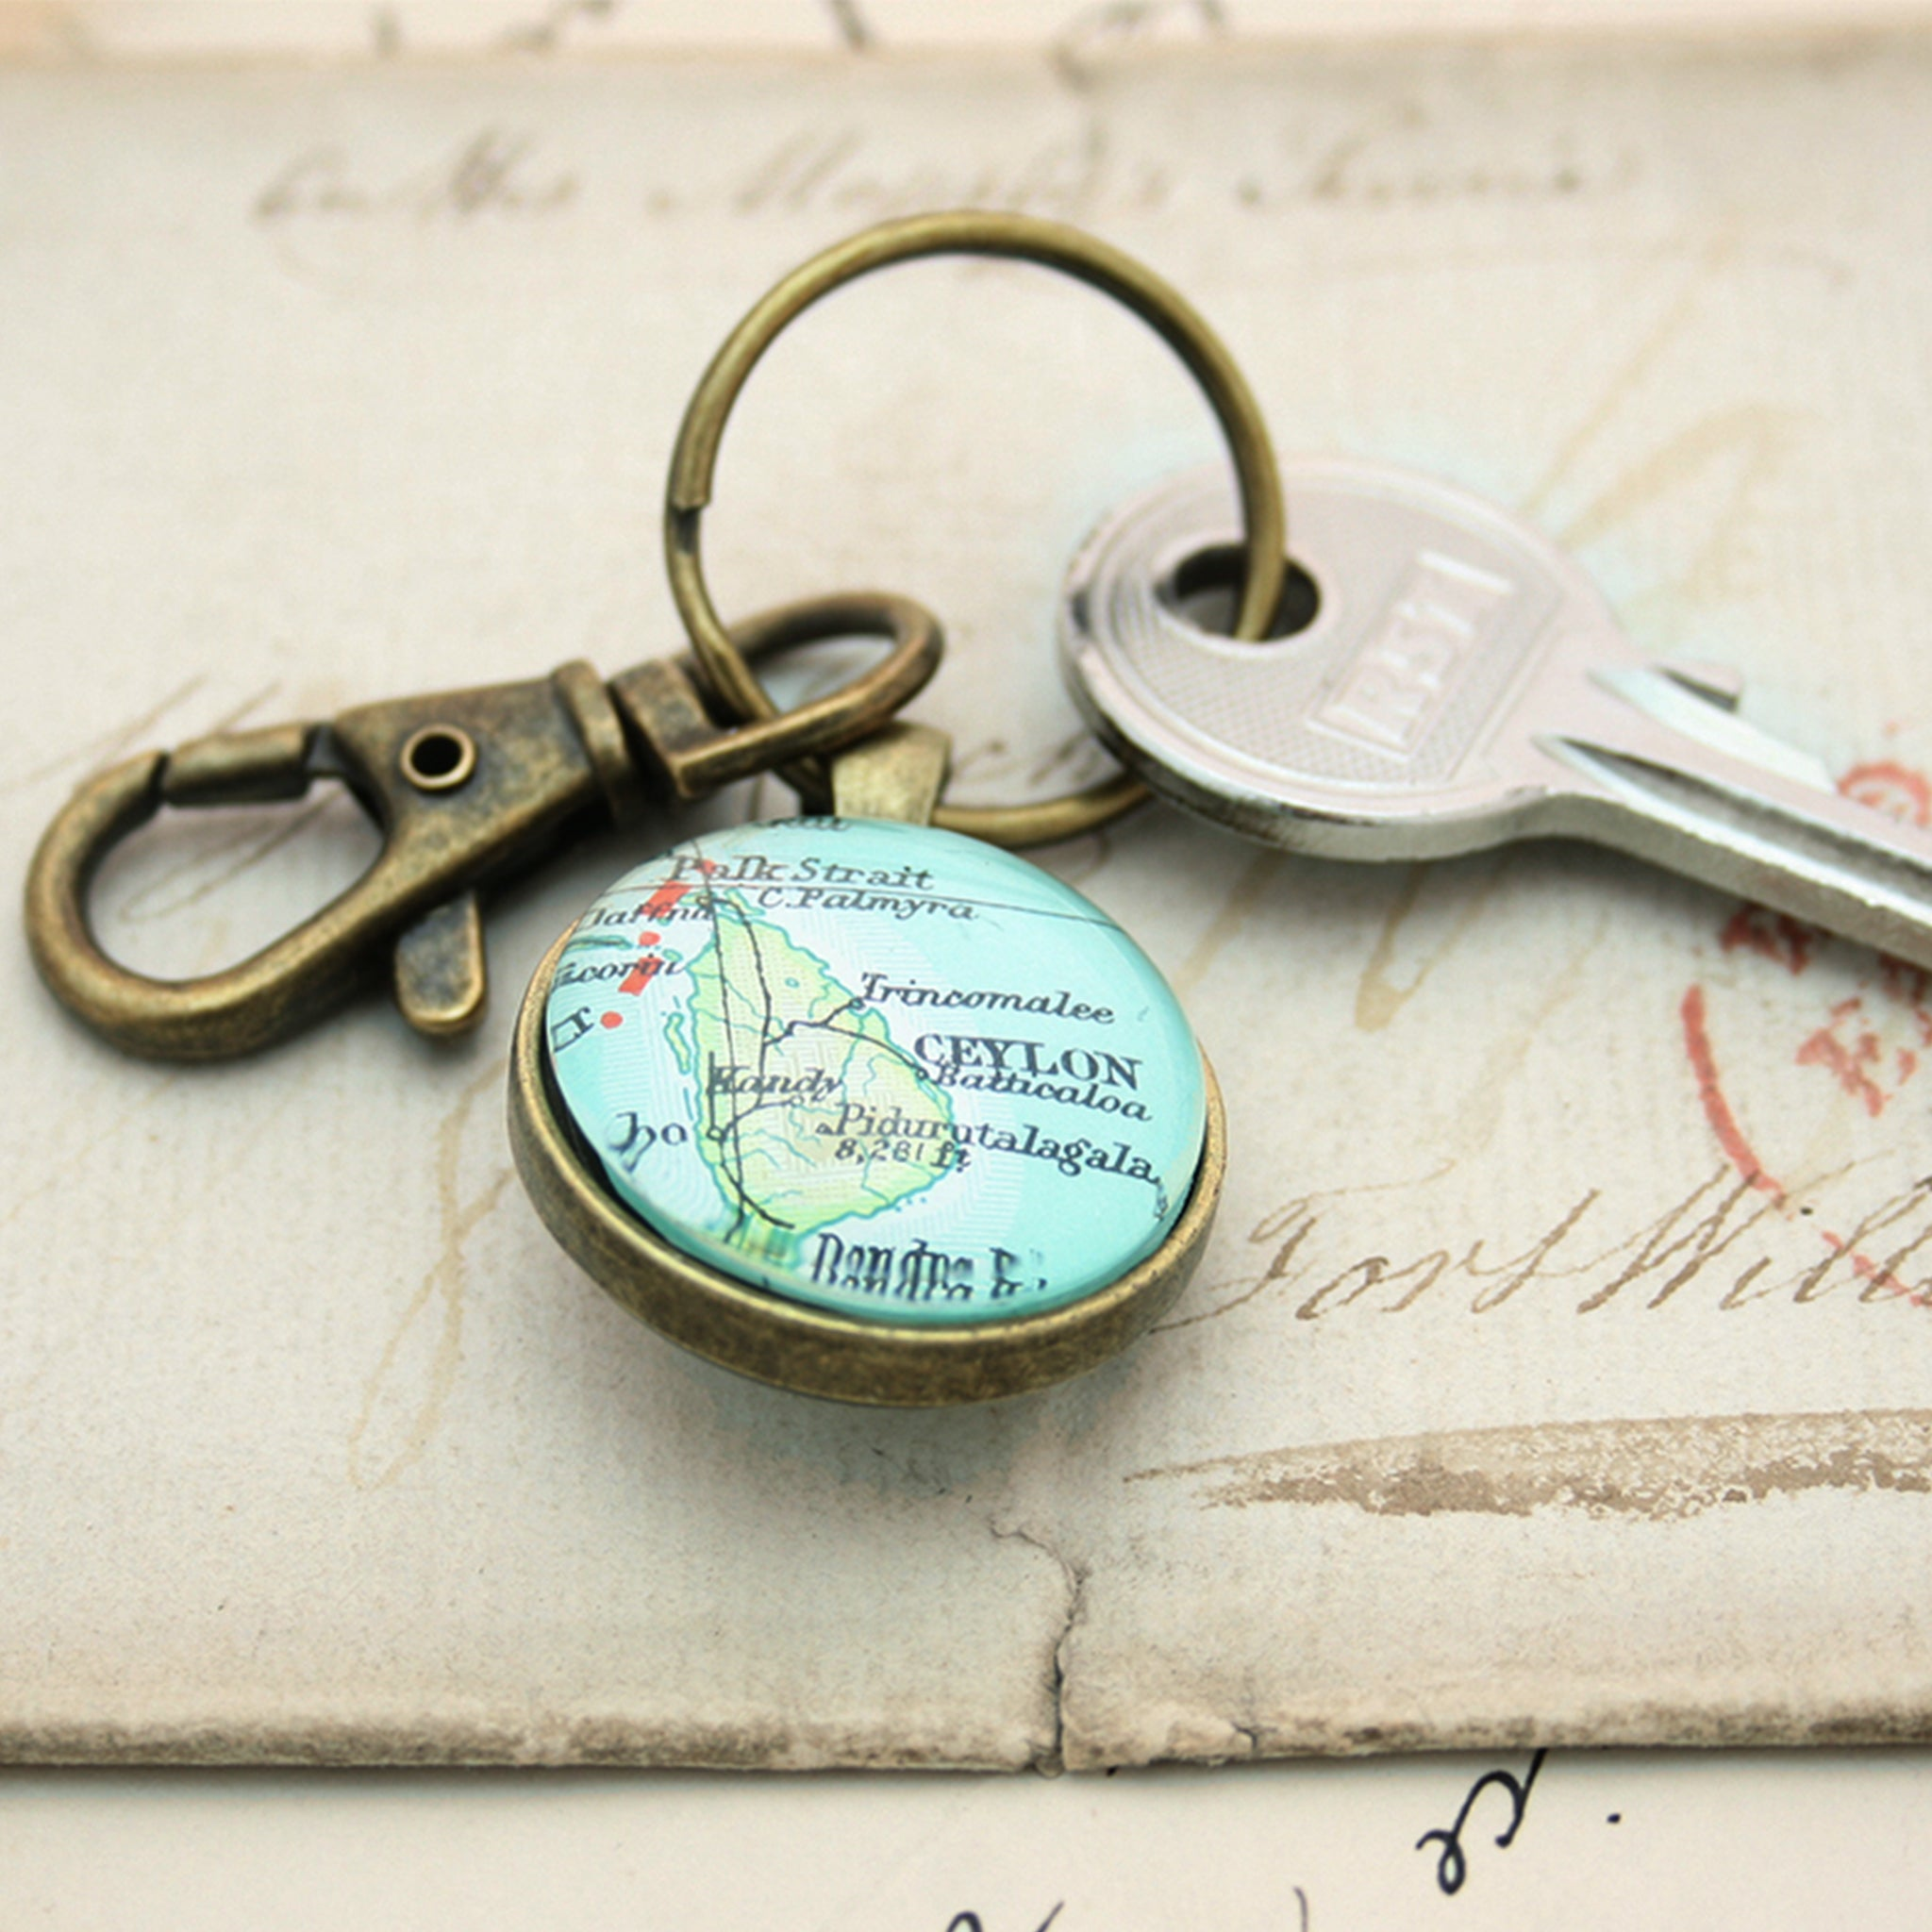 Personalised Keyring in bronze color featuring map of Ceylon